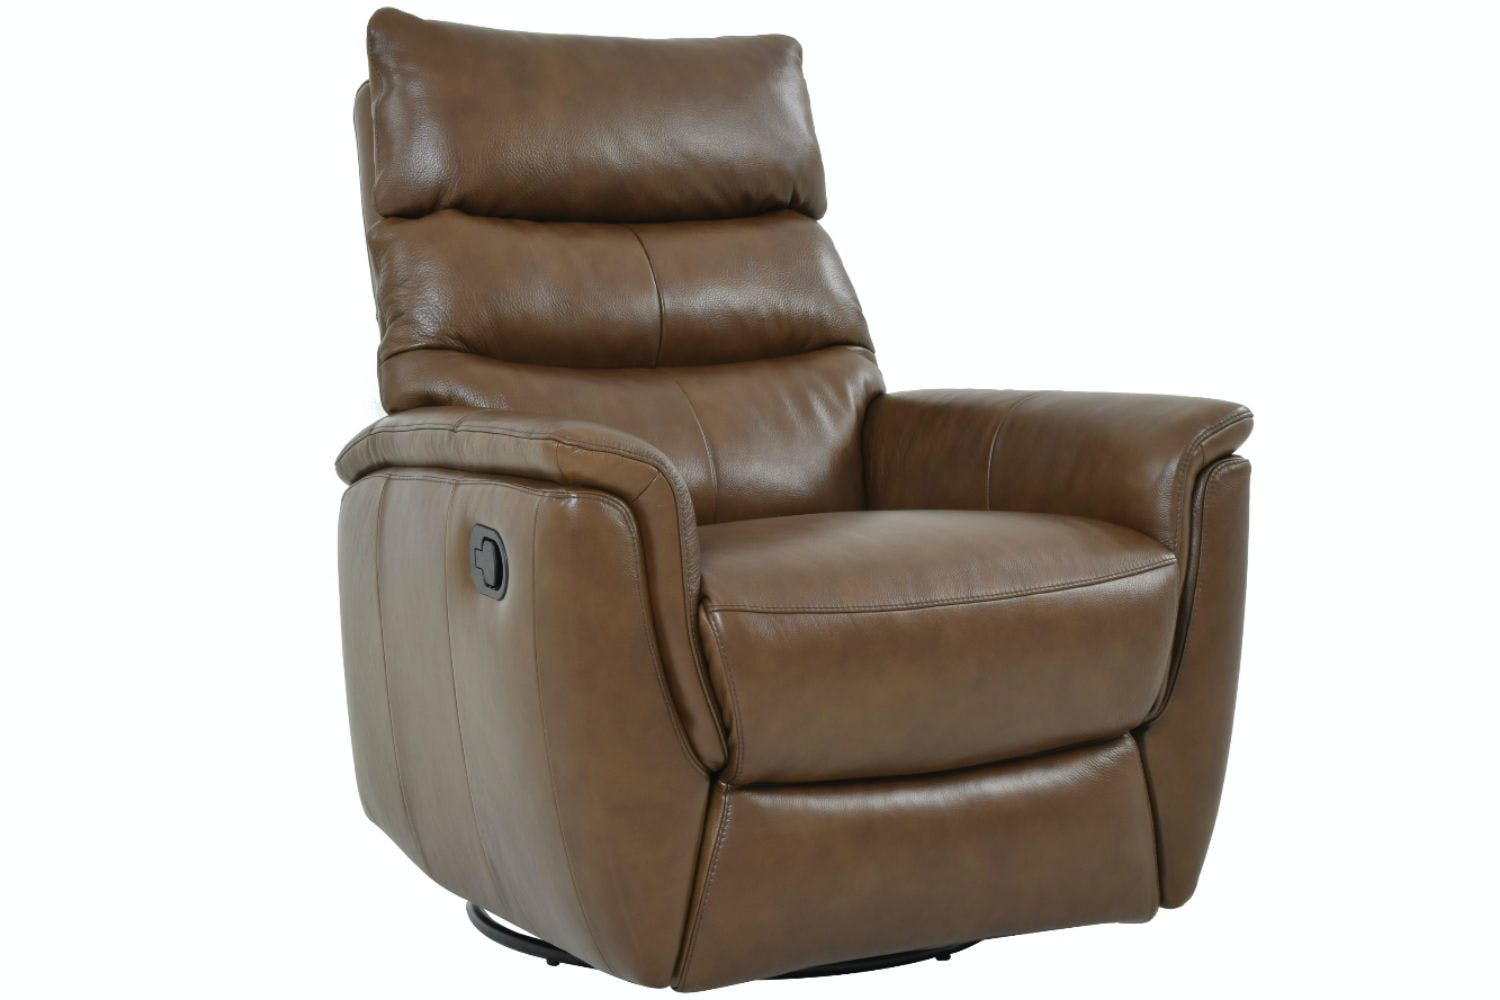 real co sofa chair uk amazon armchair home madison kitchen reclining dp recliner brown lounge gaming leather